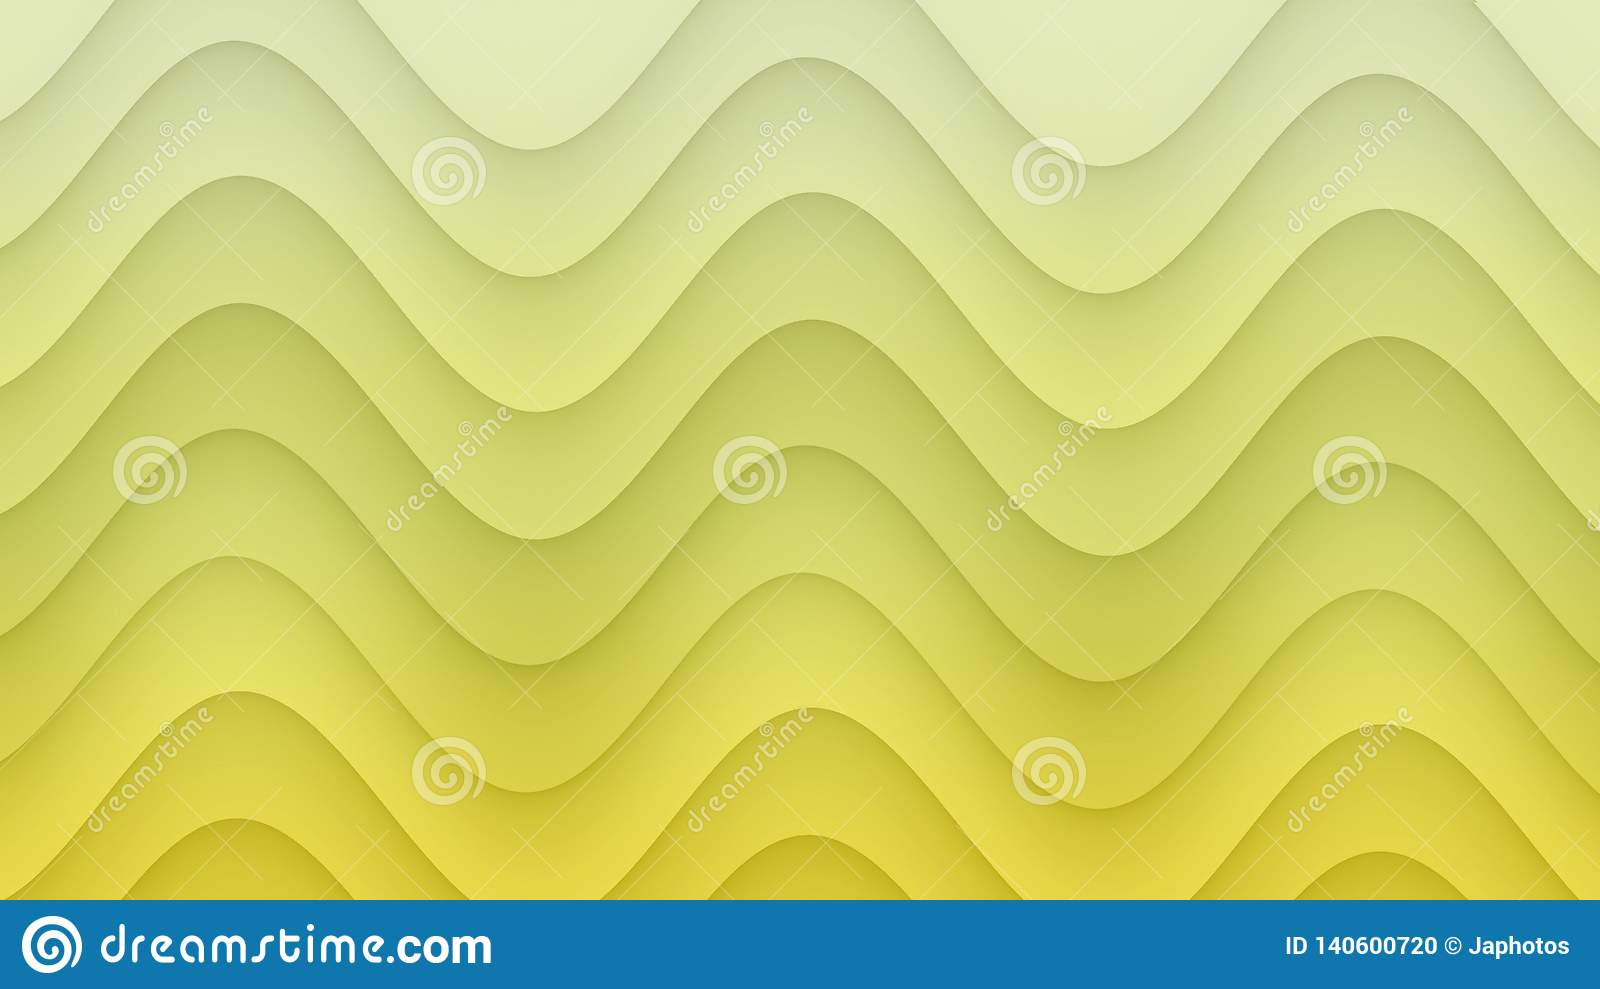 Smooth rolling curves abstract background illustration in gradient shades of sunny yellow